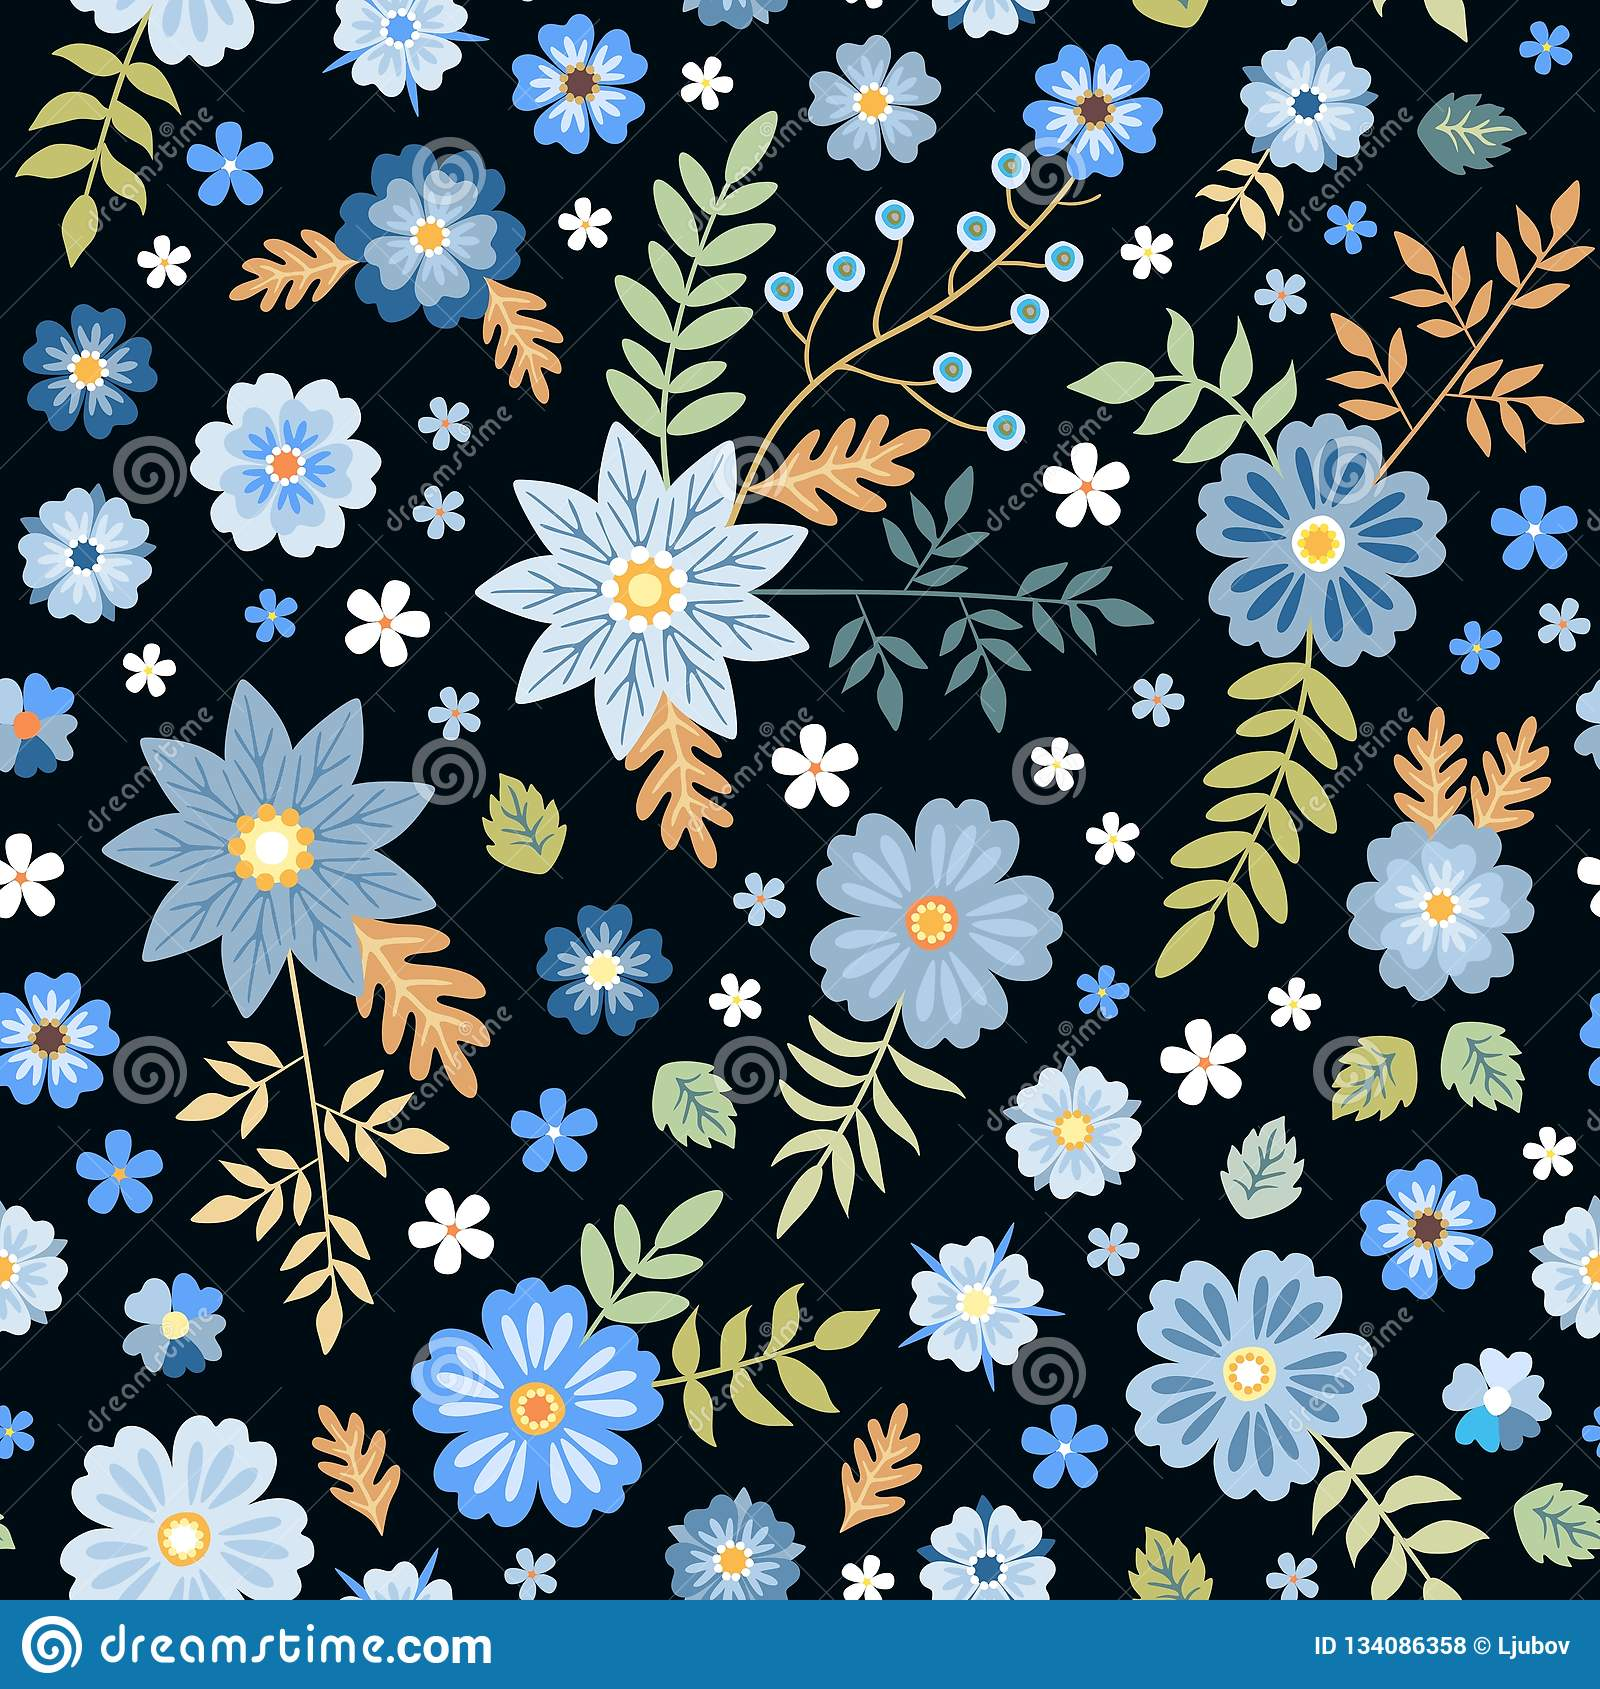 Seamless Ditsy Floral Pattern With Blue Flowers On Black